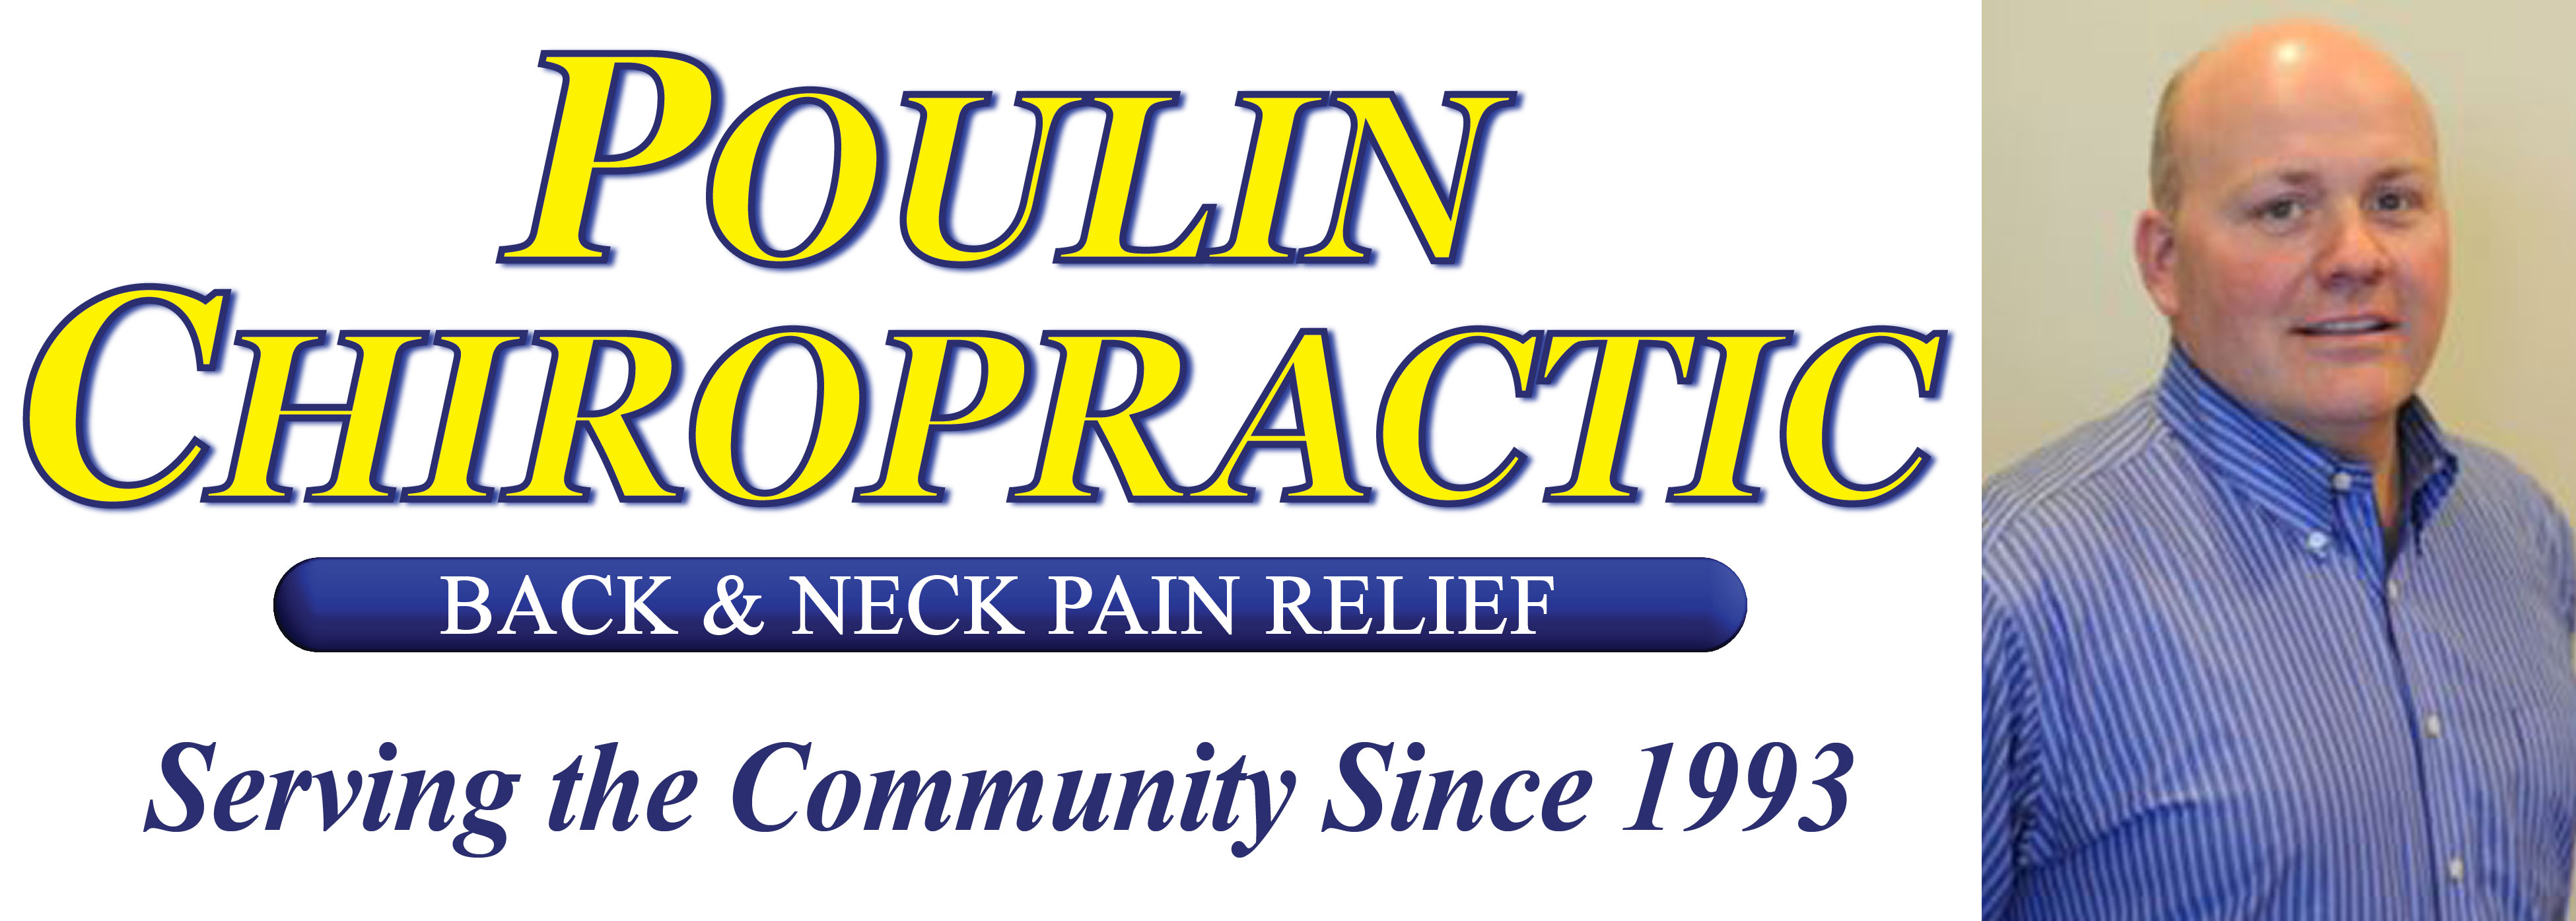 Poulin Chiropractic of Herndon and Ashburn